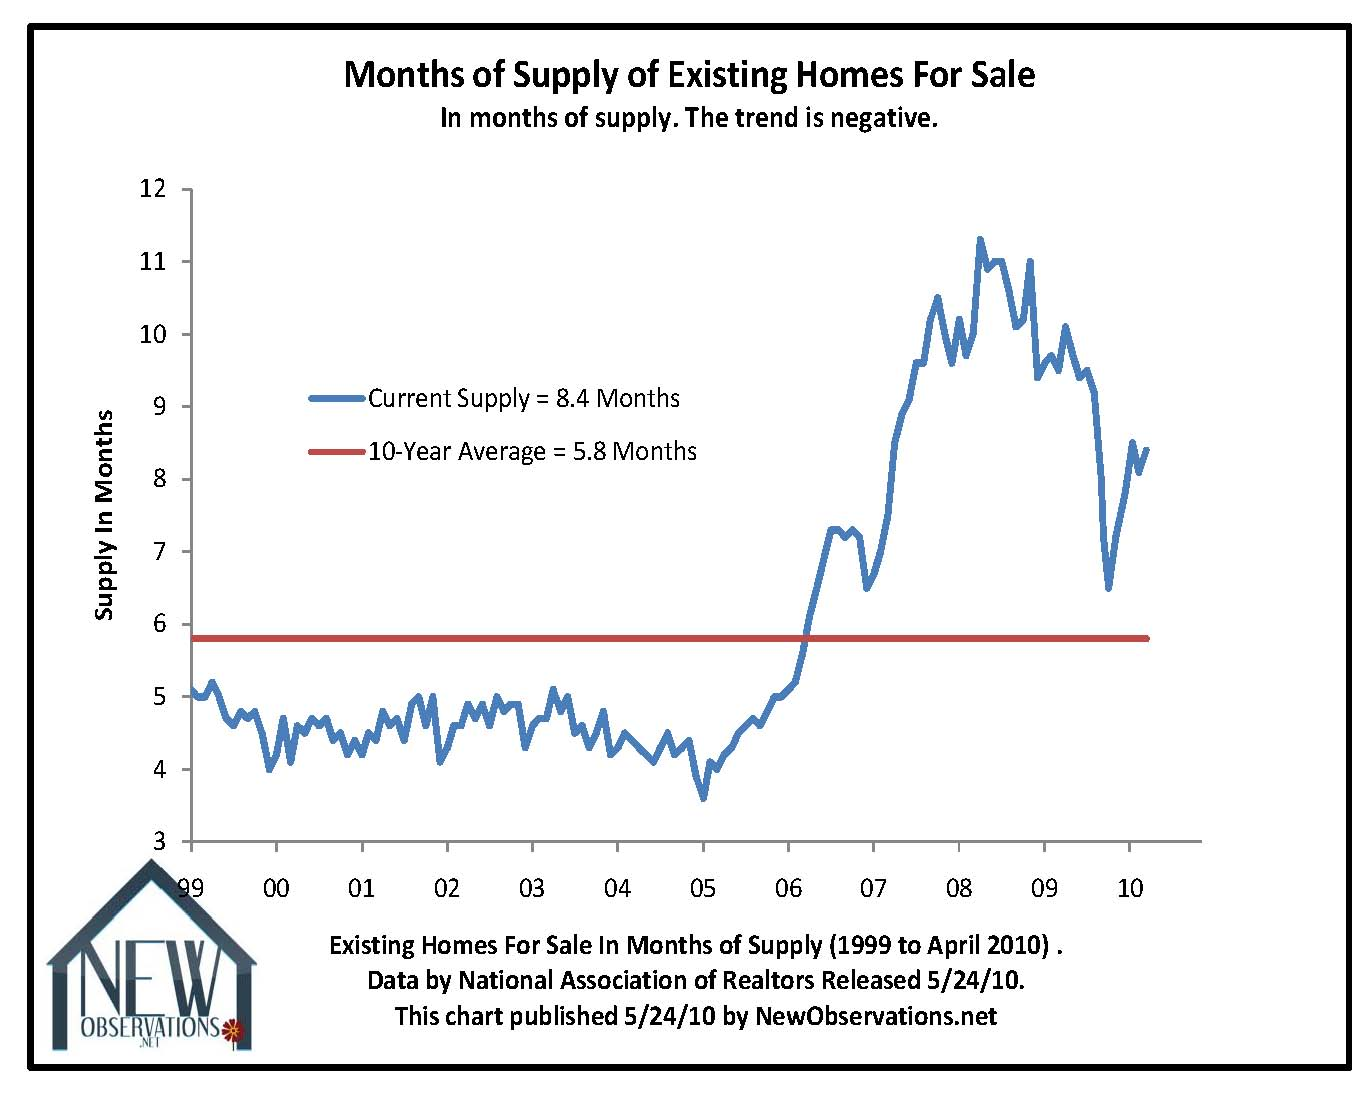 realtors say the housing fall is over, while inventory approaches